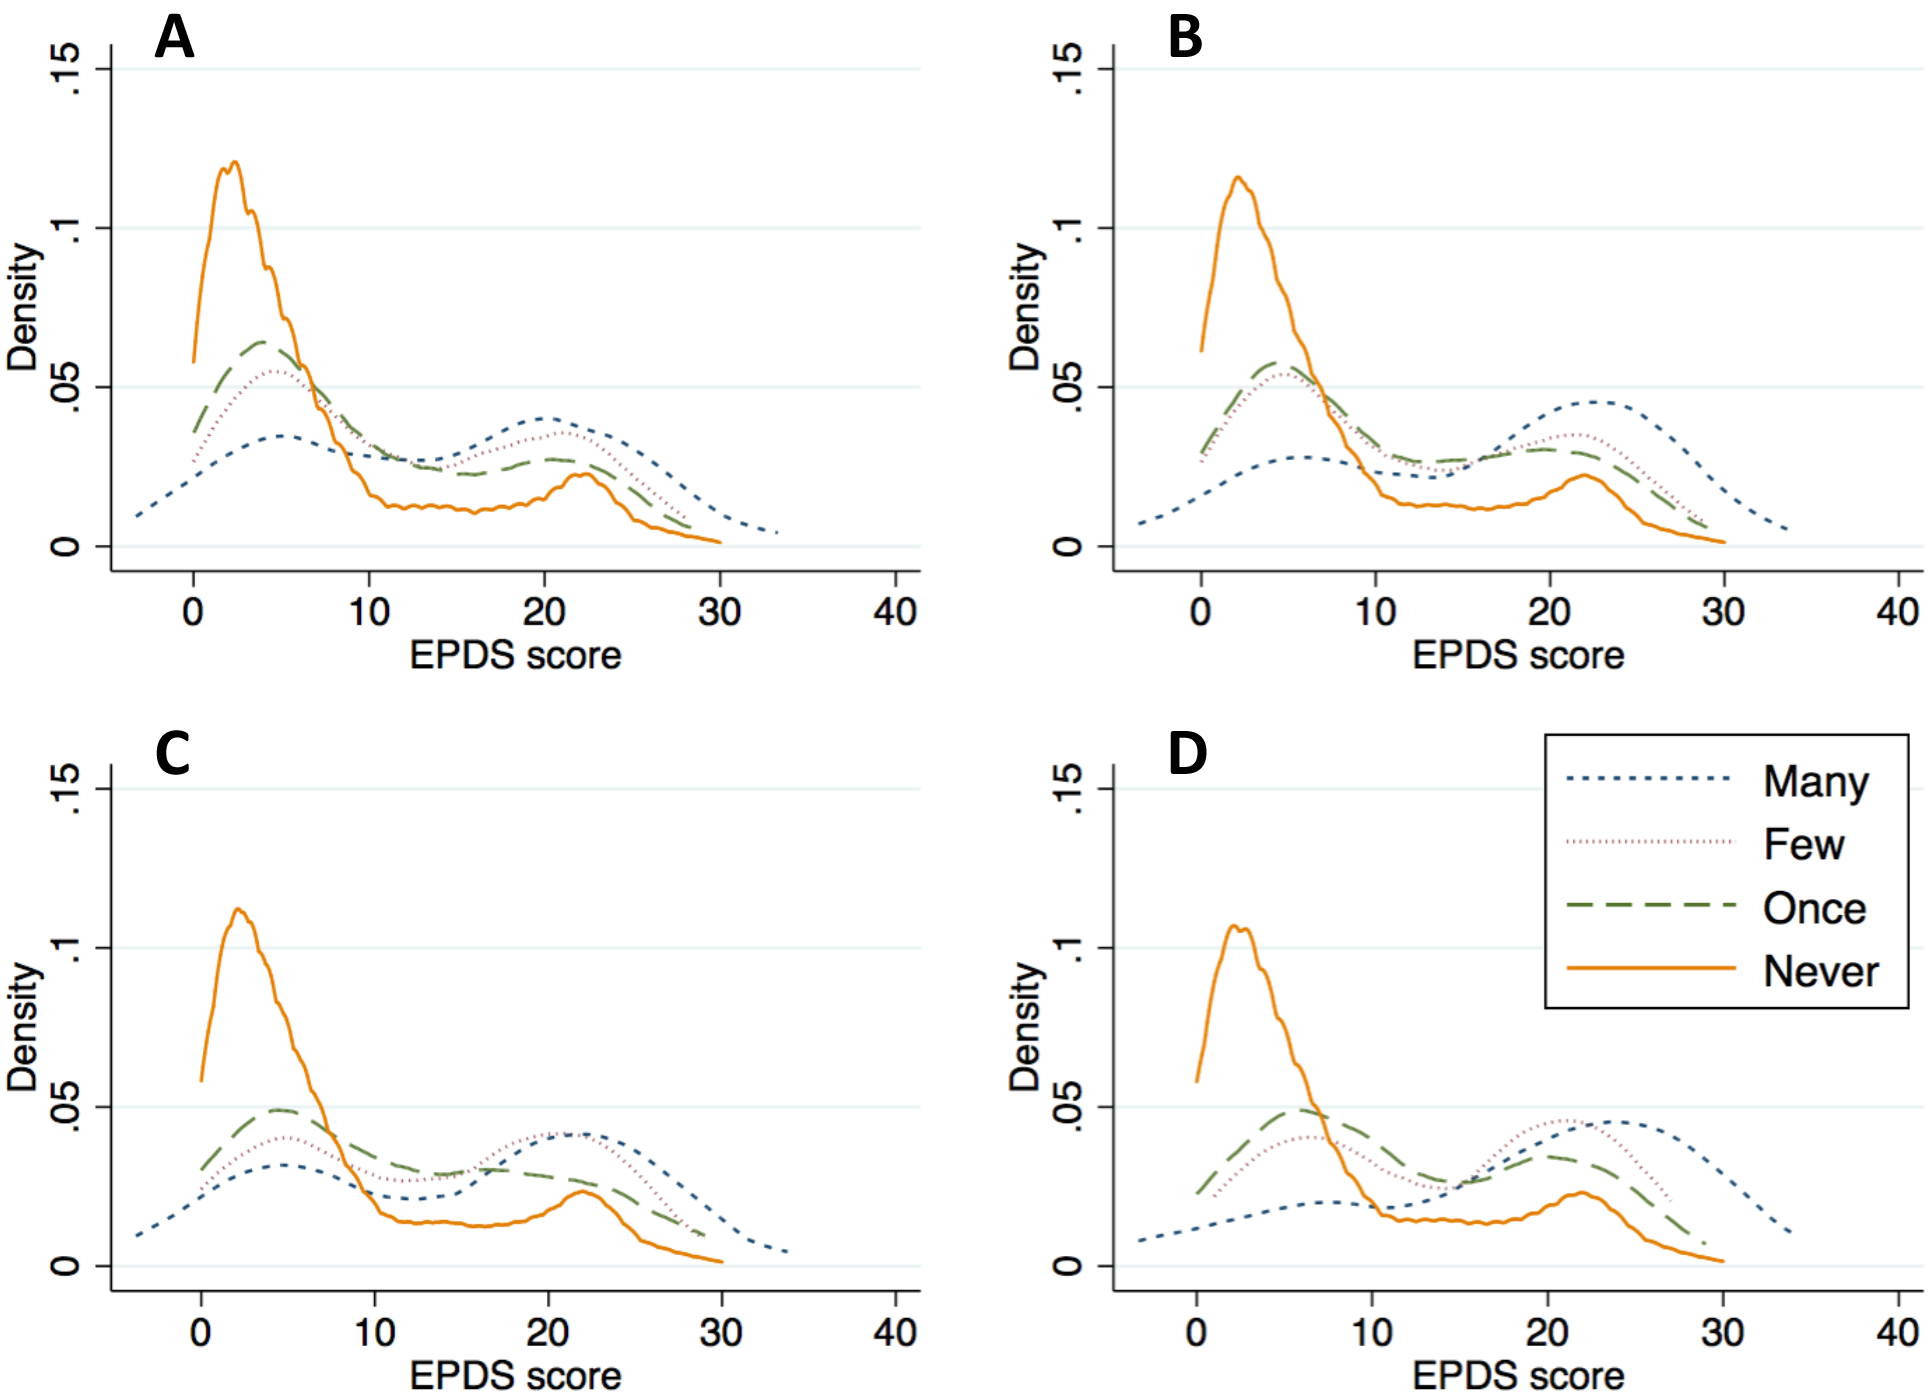 Kernel density plots of depression symptom severity, by type and frequency of intimate partner violence.